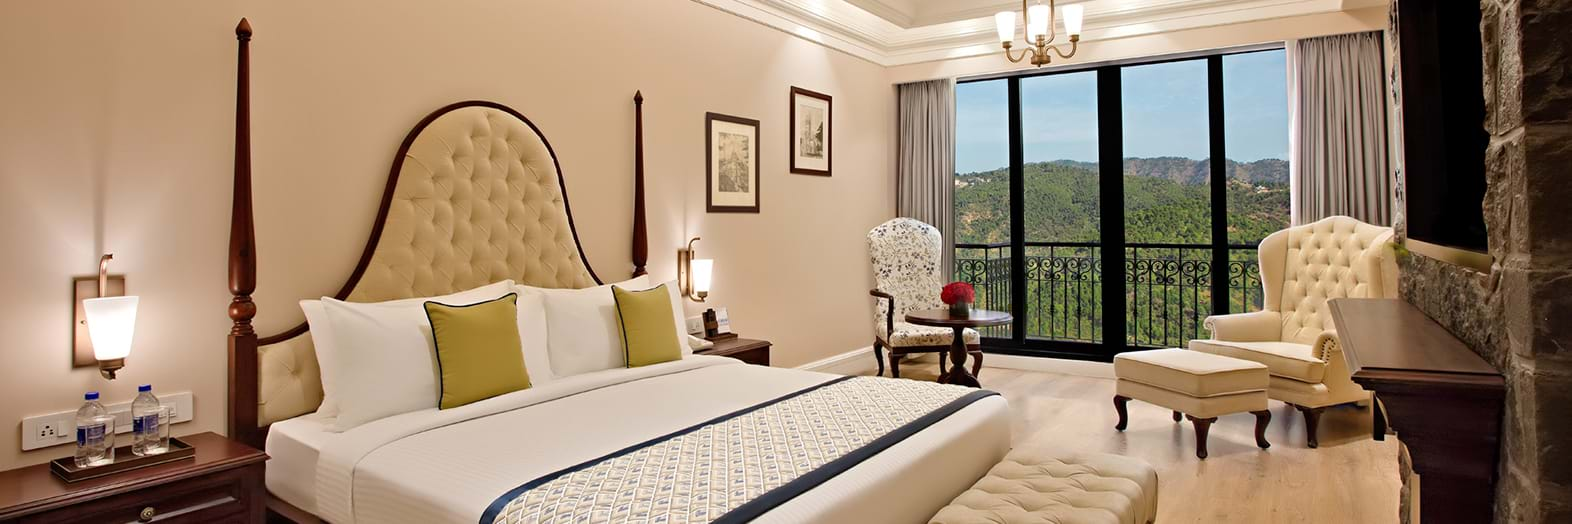 Hotels in Solan